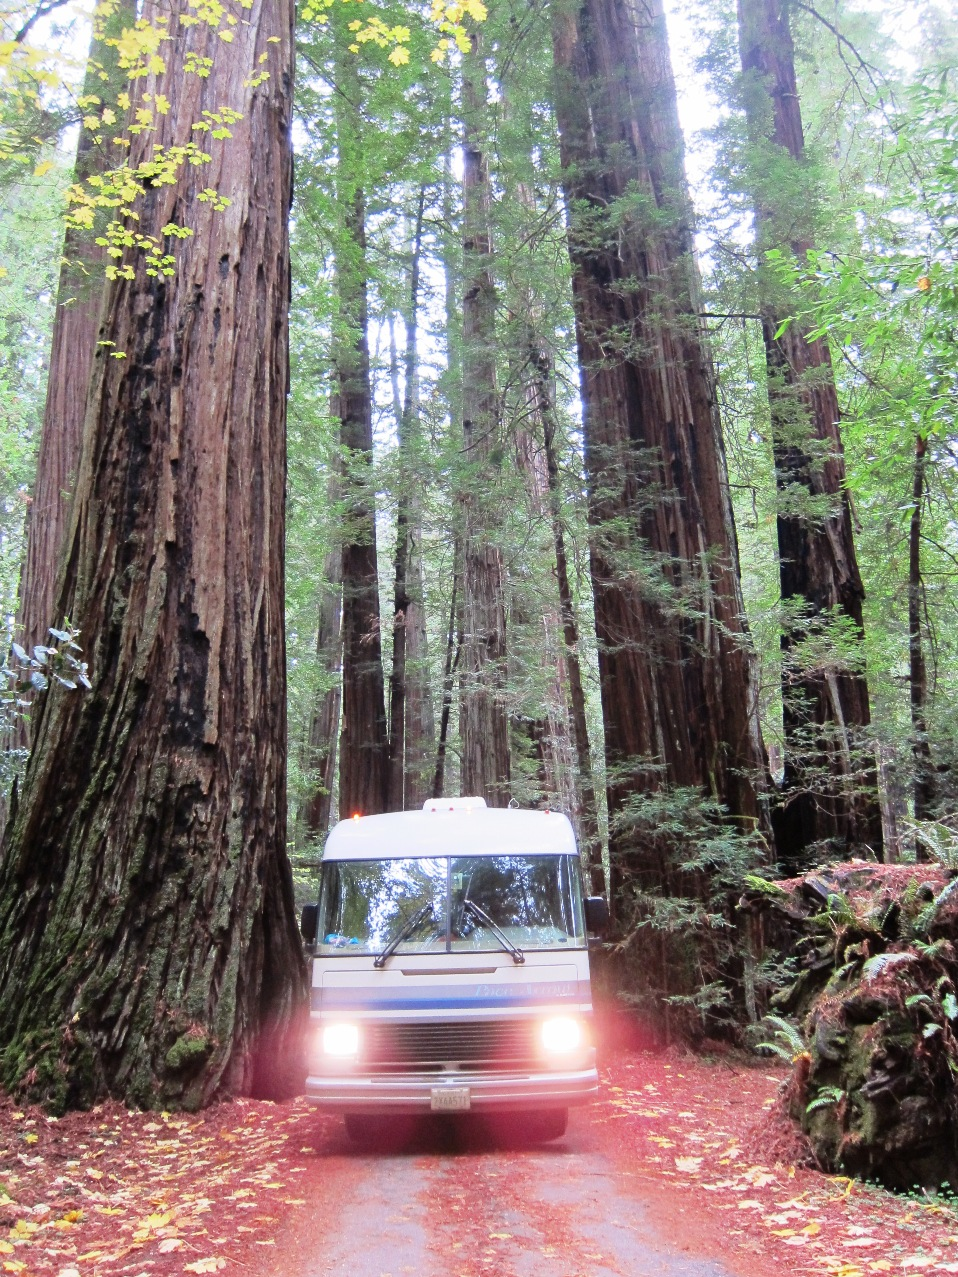 RV in the Redwoods